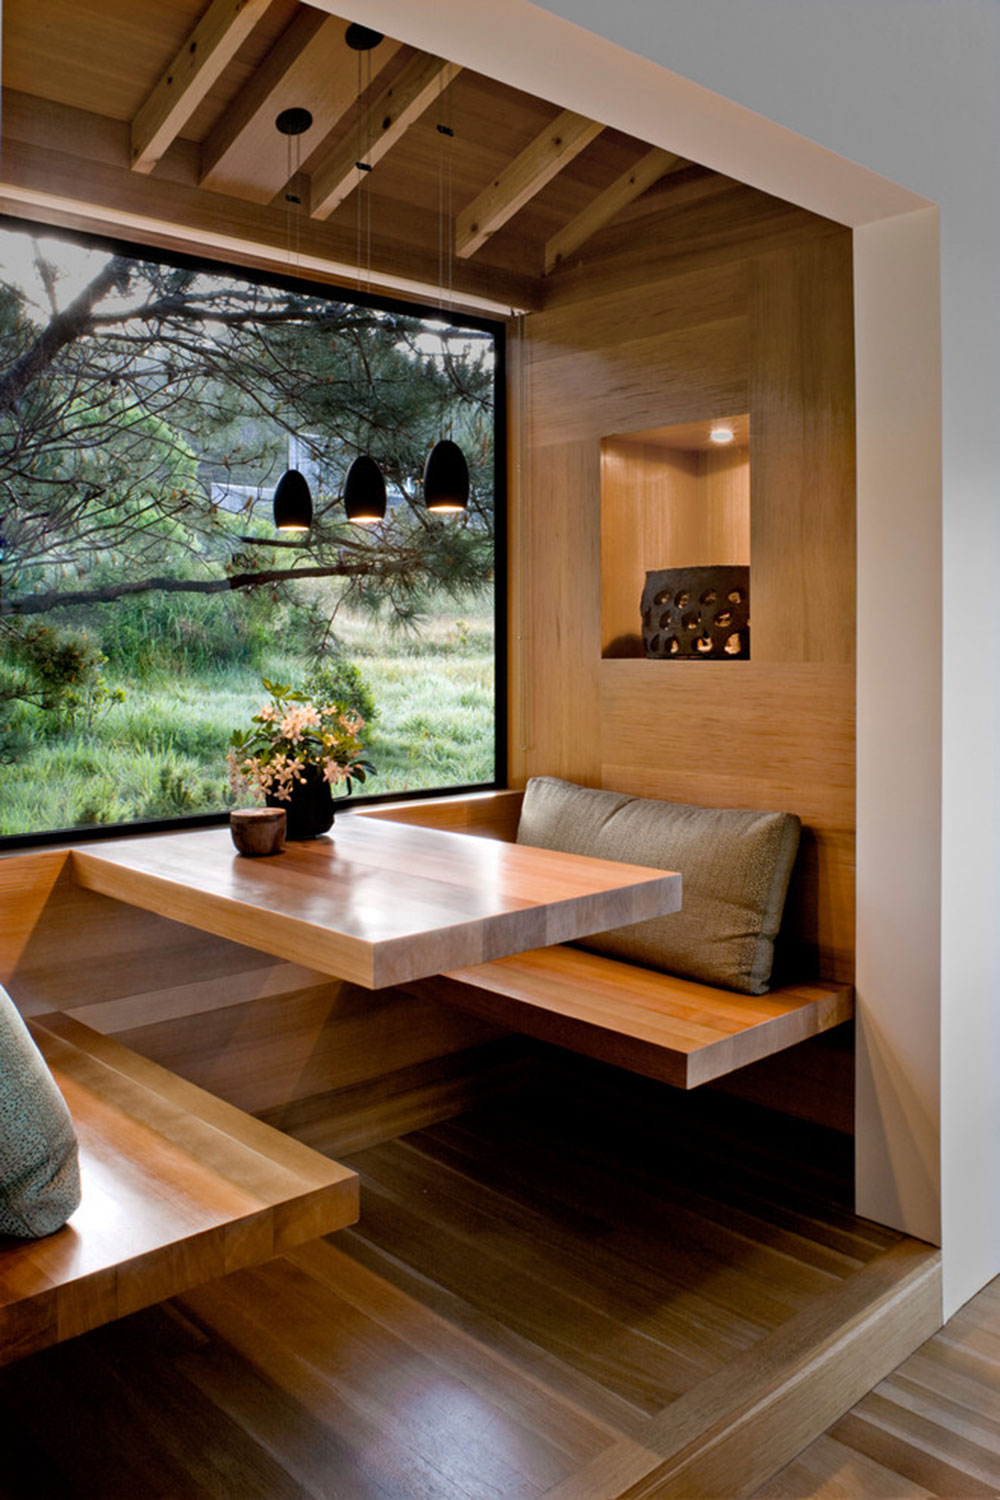 Breakfast-Nook-Design-Ideas-for-Awesome-Mornings 14 Breakfast Nook Design-Ideas for Awesome Mornings